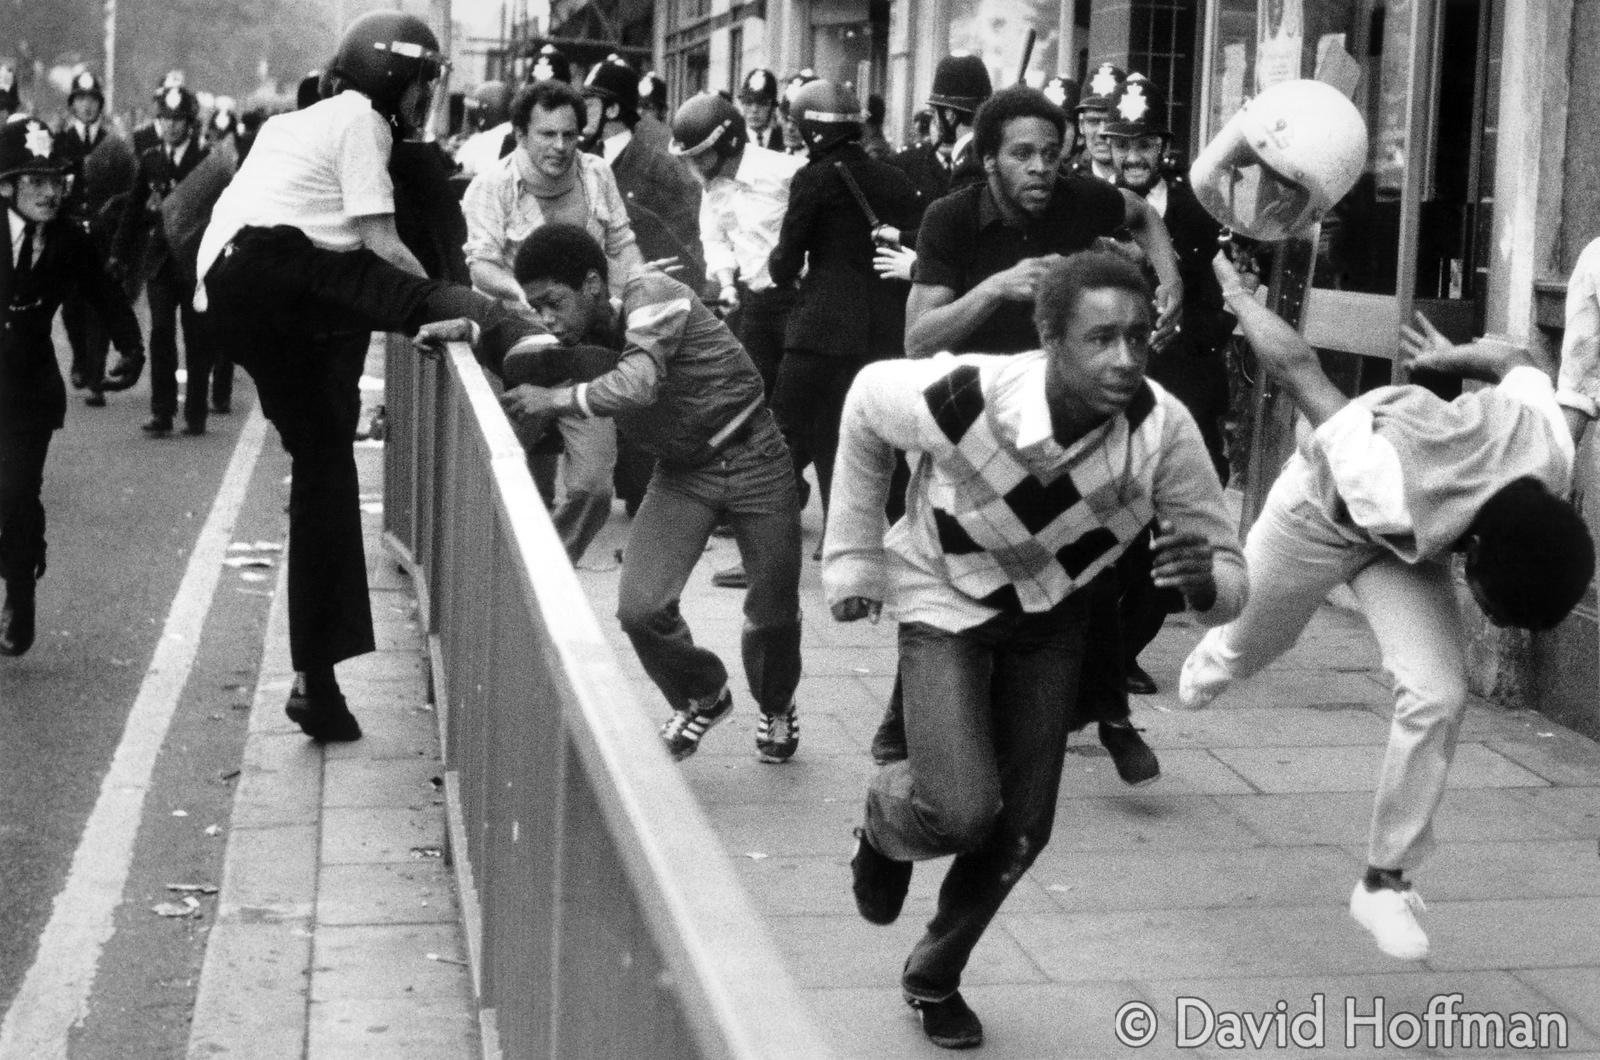 Railton Road, Brixton - the Frontline. Rioting overwhelmed police aftera man was stabbed during the deliberately oppressive S...